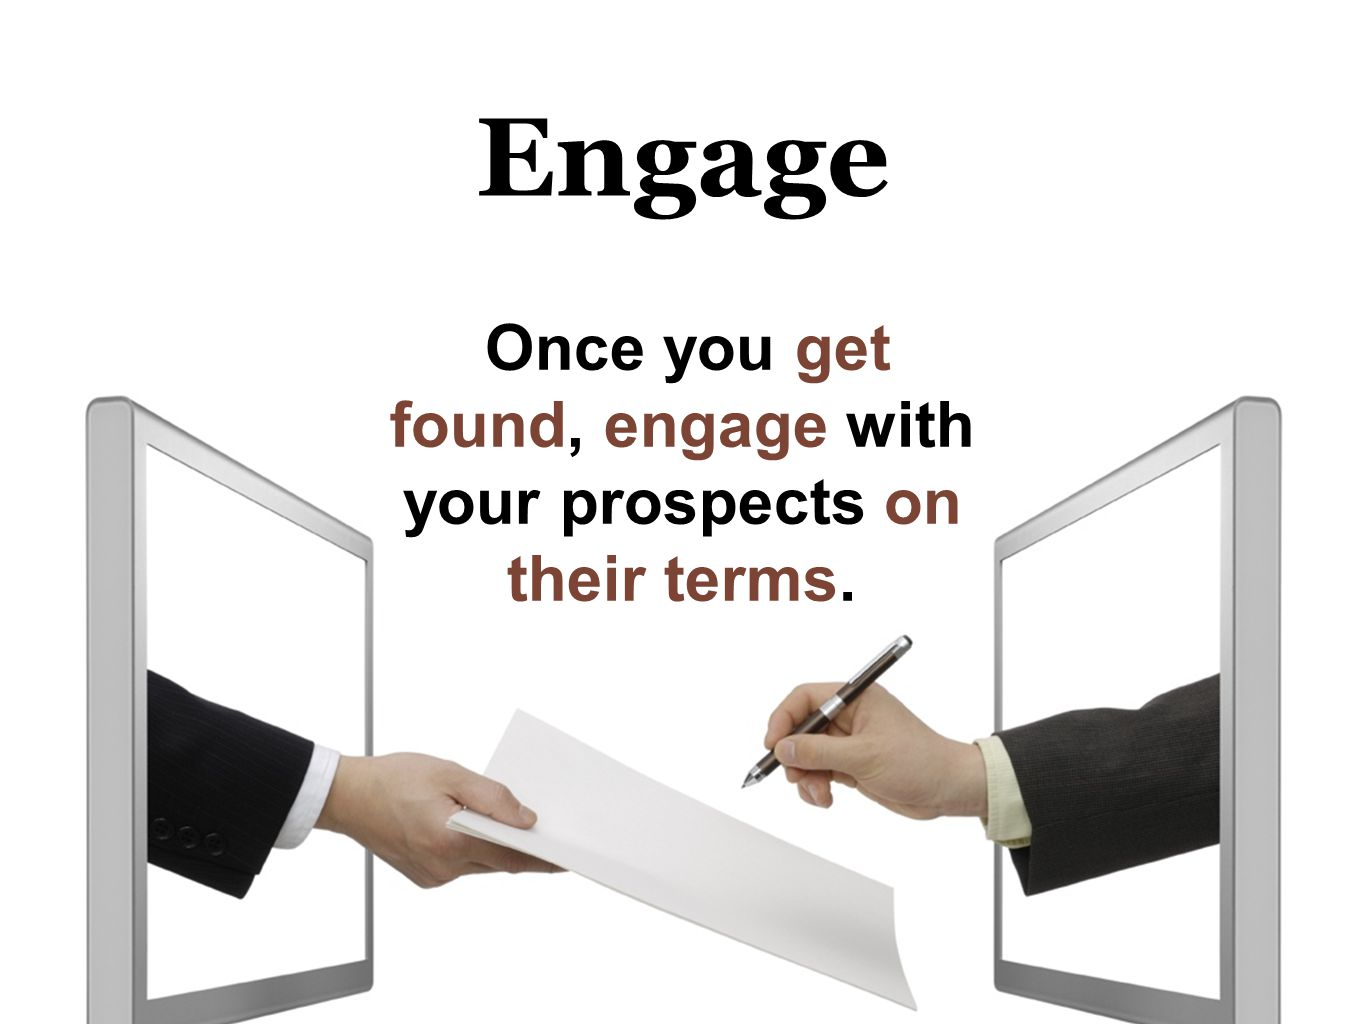 Engage Once you get found, engage with your prospects on their terms.